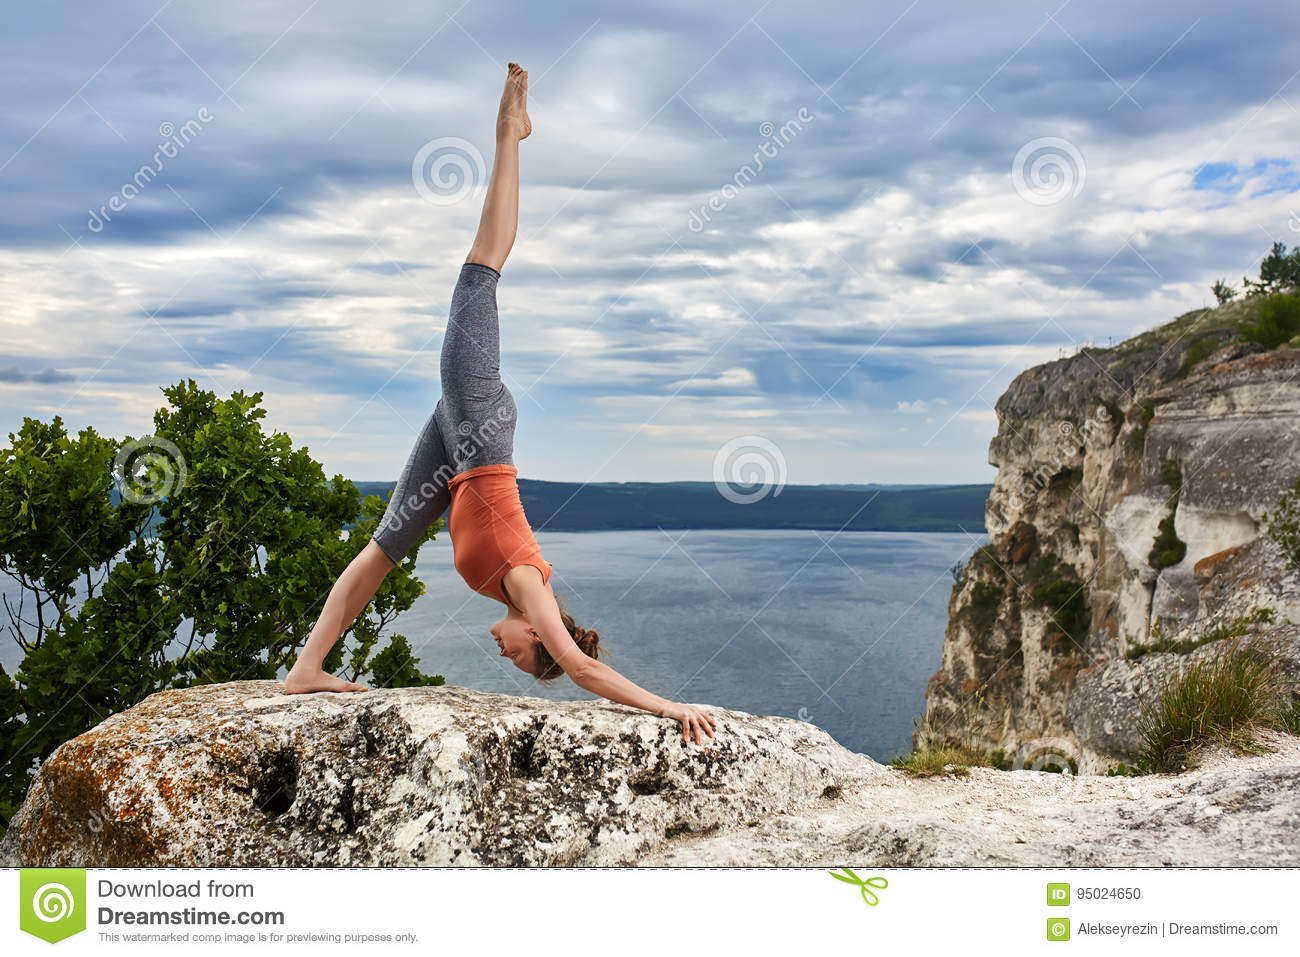 Attractive woman standing on the rock and doing yoga exercises above river.